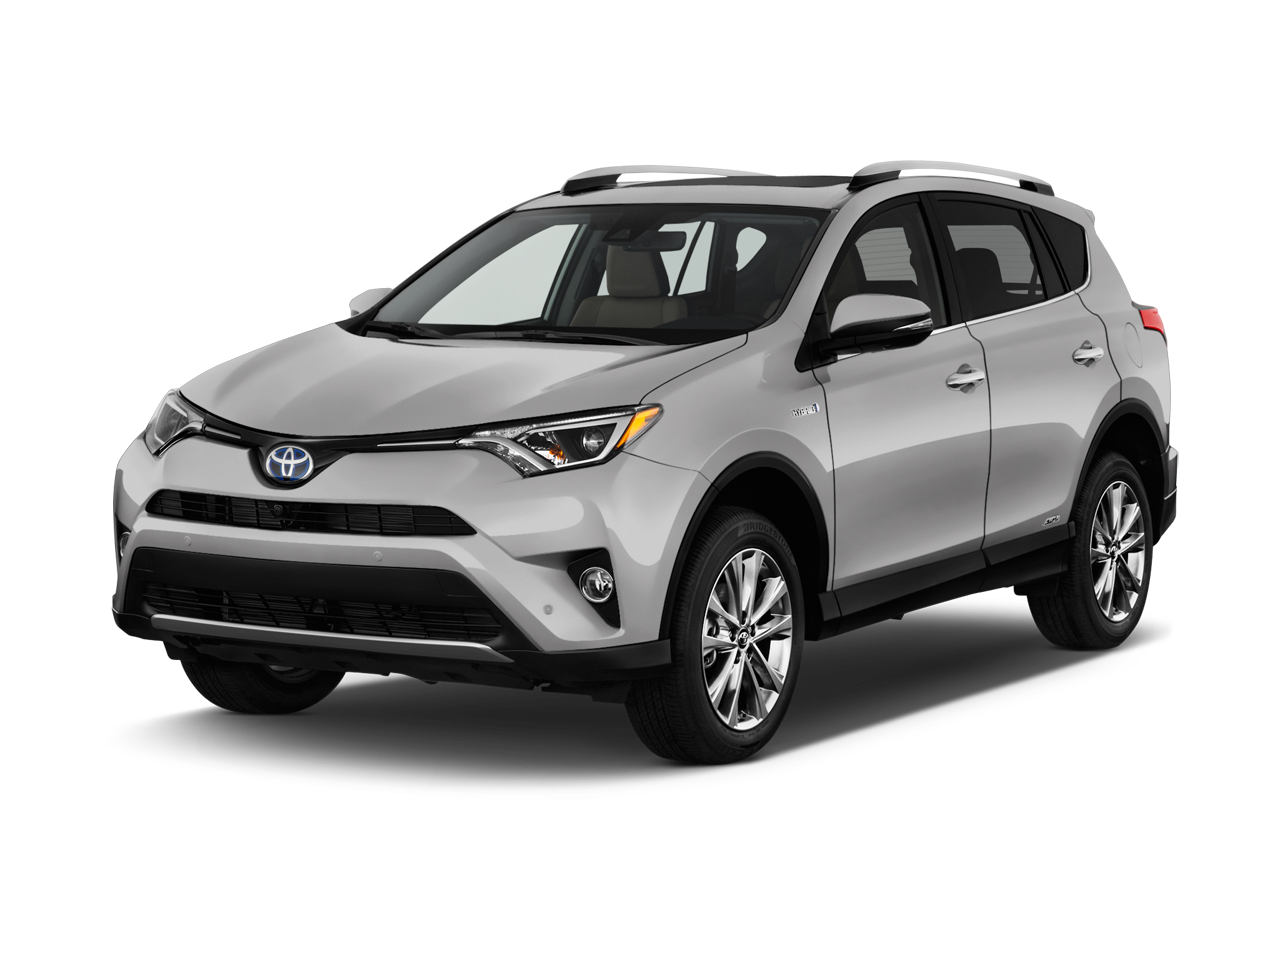 used 2016 toyota rav4 limited near salisbury md pohanka honda in capitol heights. Black Bedroom Furniture Sets. Home Design Ideas